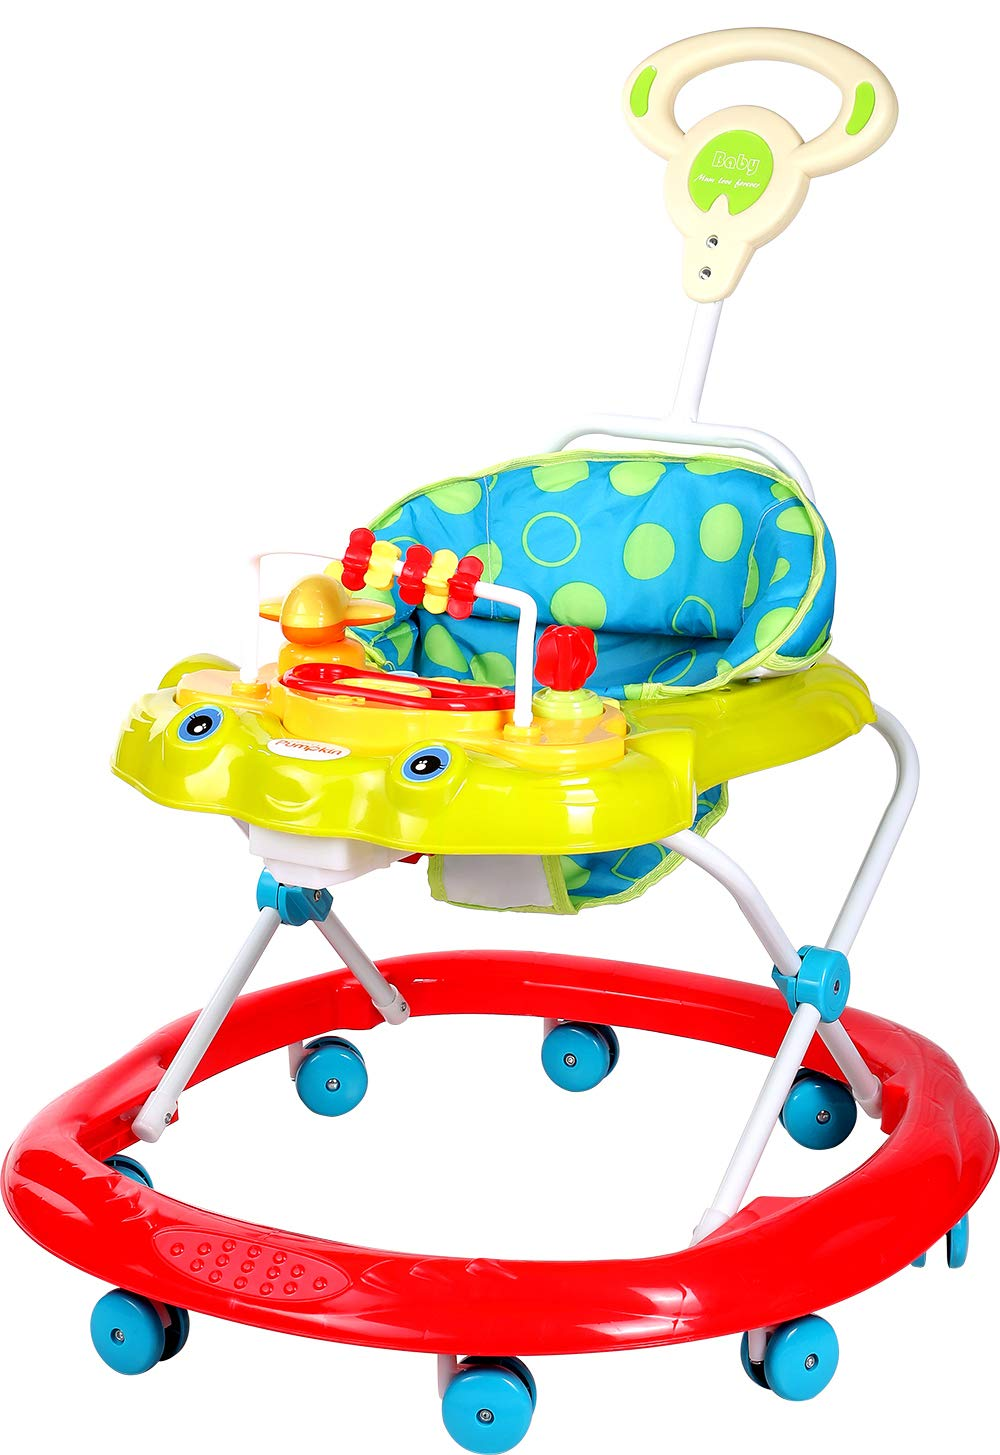 Little Pumpkin Classic Baby Walker Musical Toy Bar for Kids of 6 Months to 1.5 Year